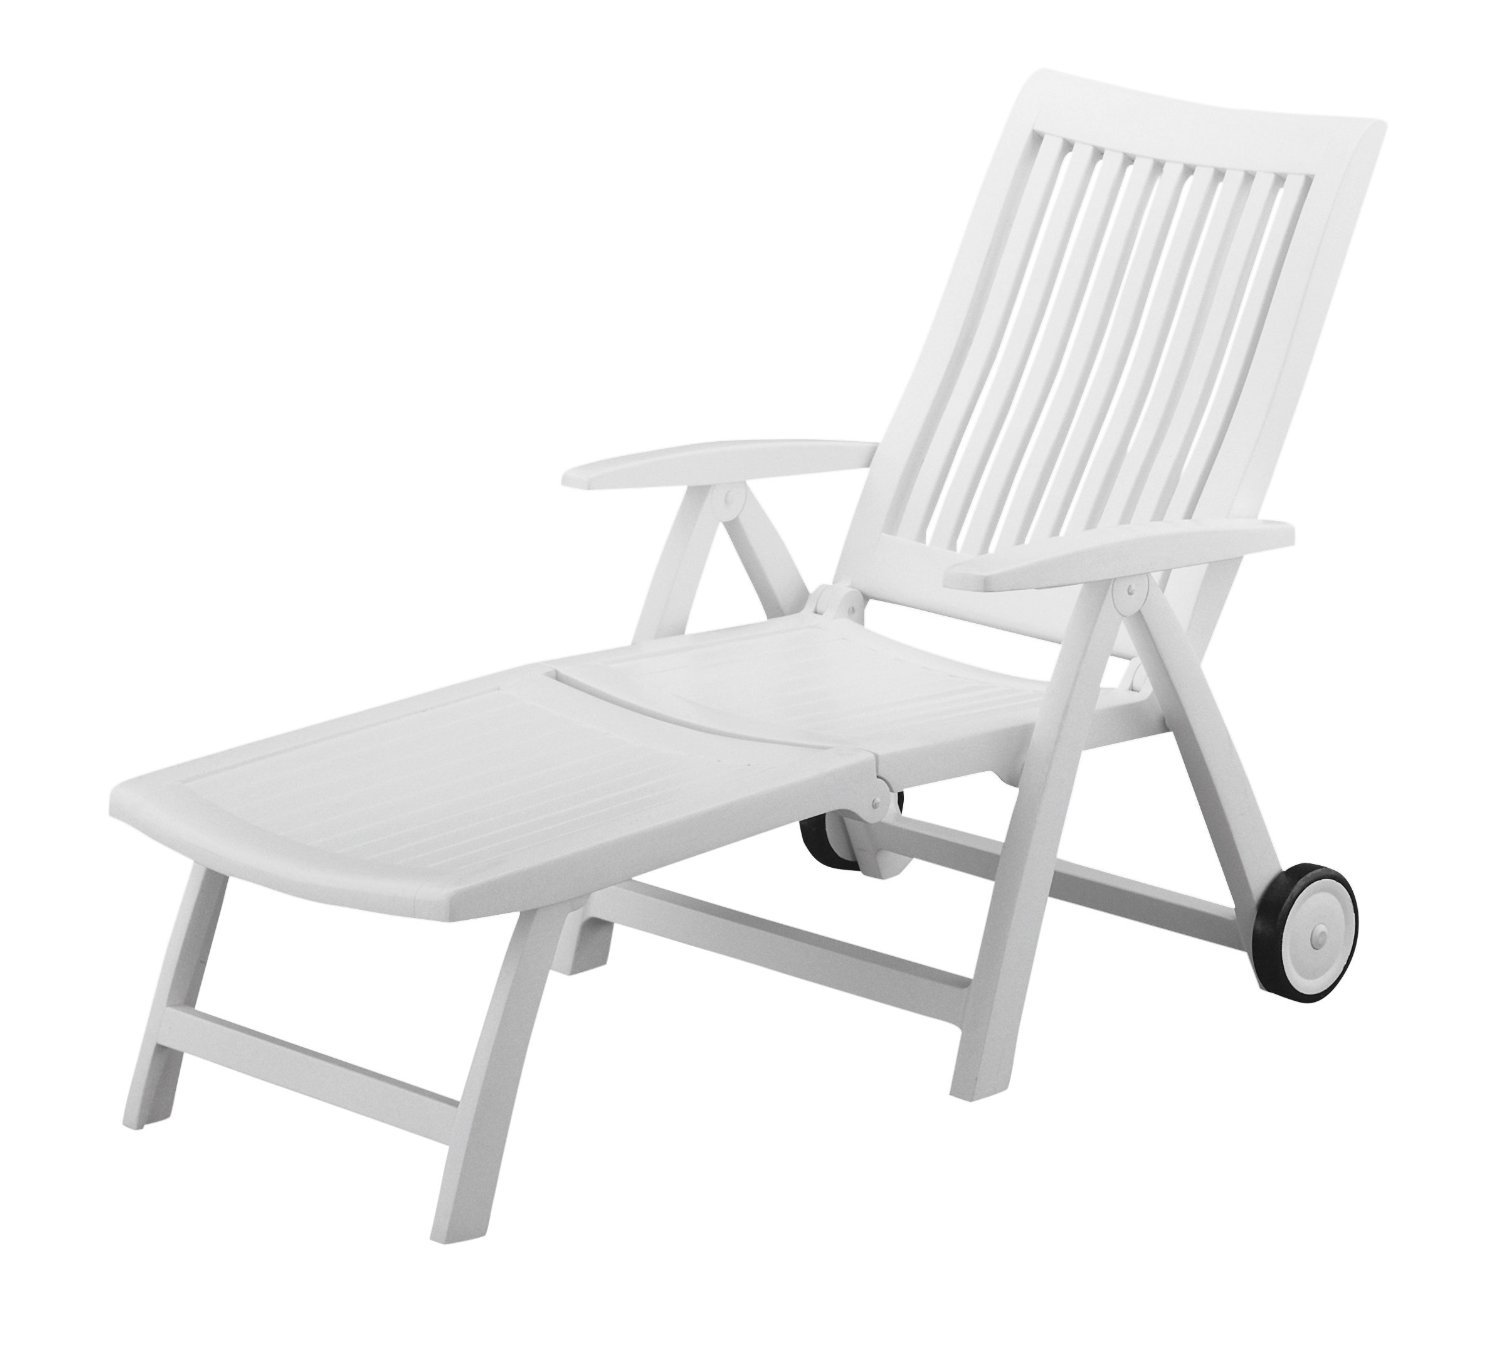 Amazon.com : Kettler Roma Folding Lounger In White Resin : Patio Lounge  Chairs : Garden U0026 Outdoor